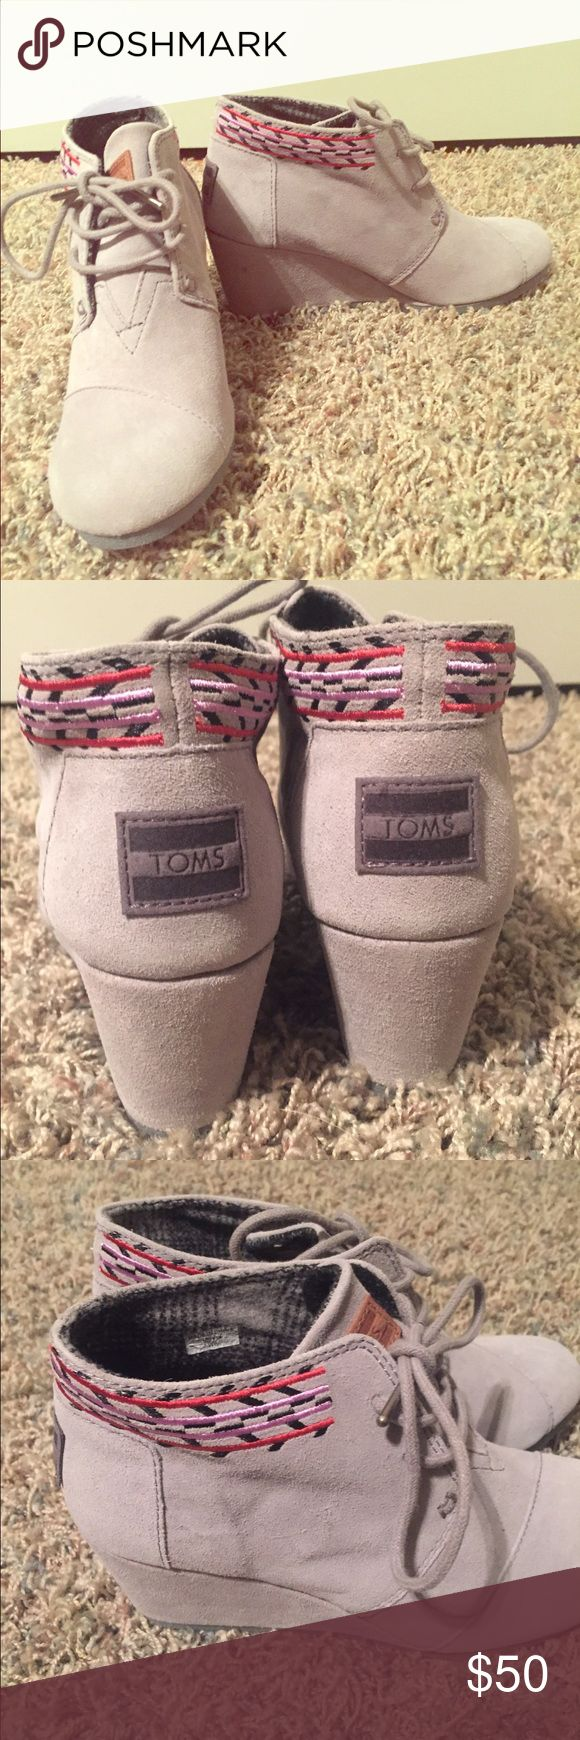 NEW TOMS desert wedges Super cute design!! New with box and TOMS sticker. TOMS Shoes Wedges